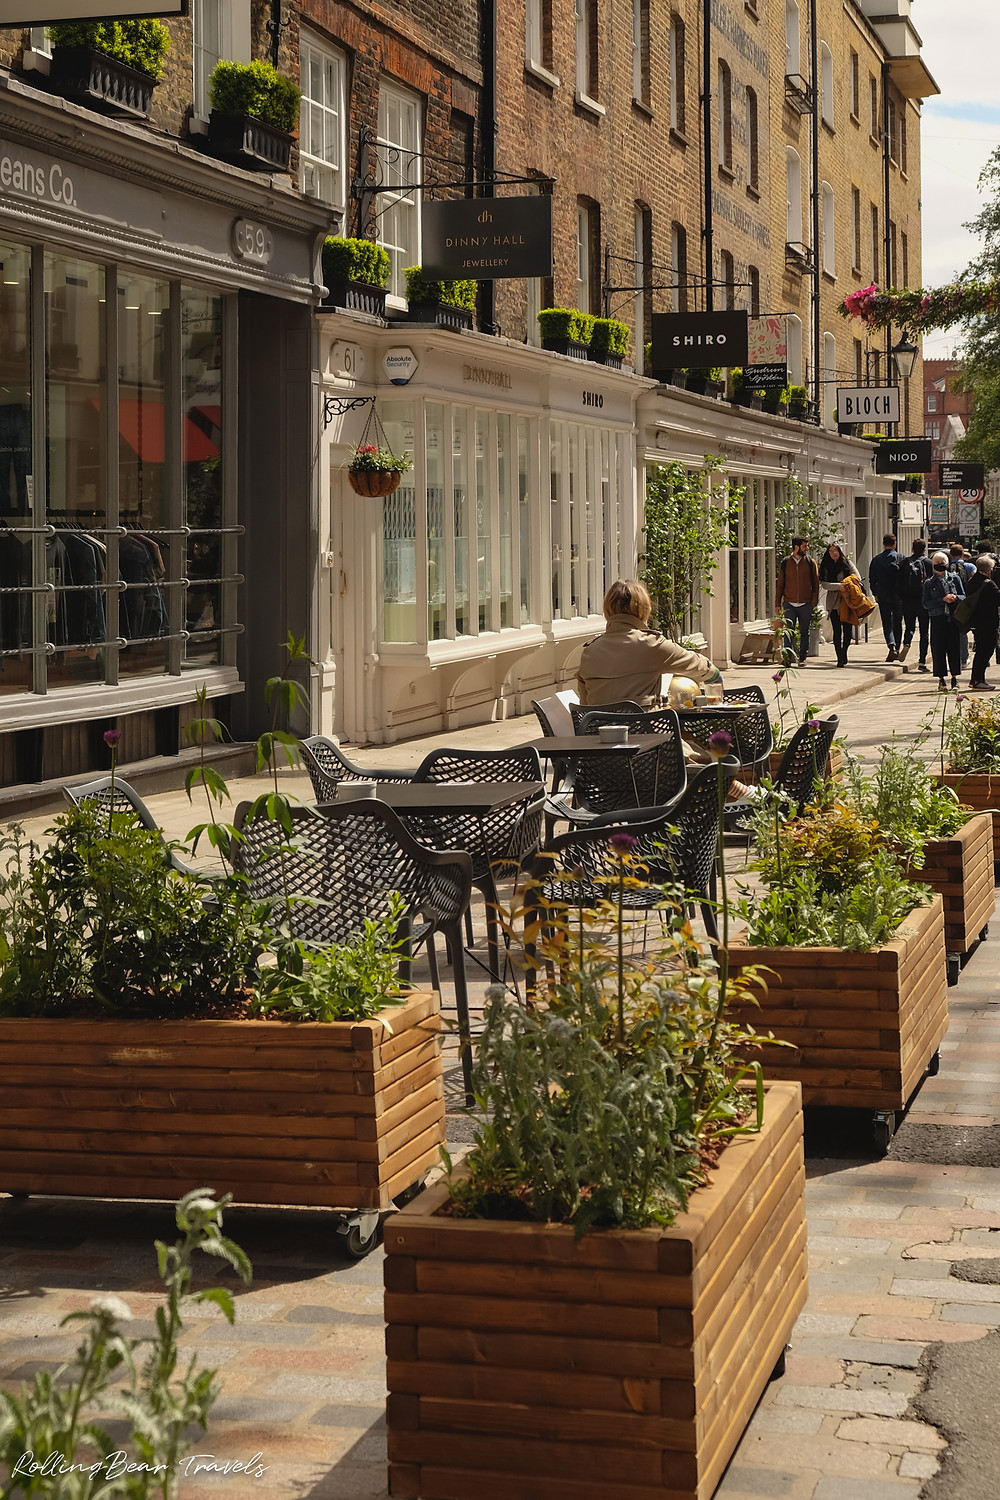 Covent Garden travel guide | RollingBear Travels